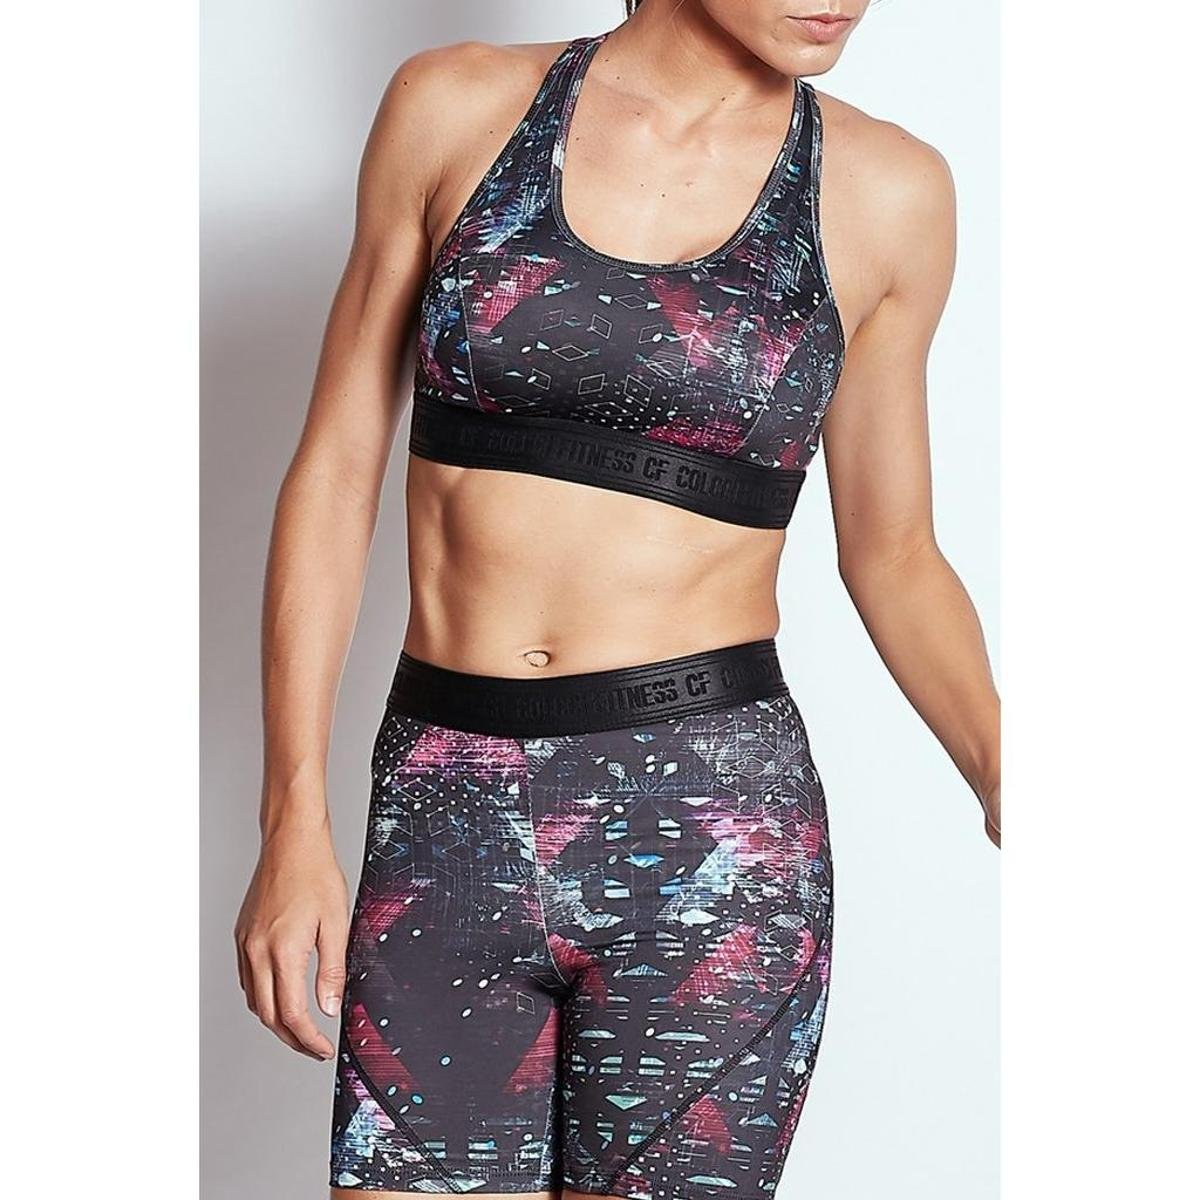 Fitness Colcci Top Estampado 00465700248 Preto Top Colcci Estampado Fitness HWOFARnR